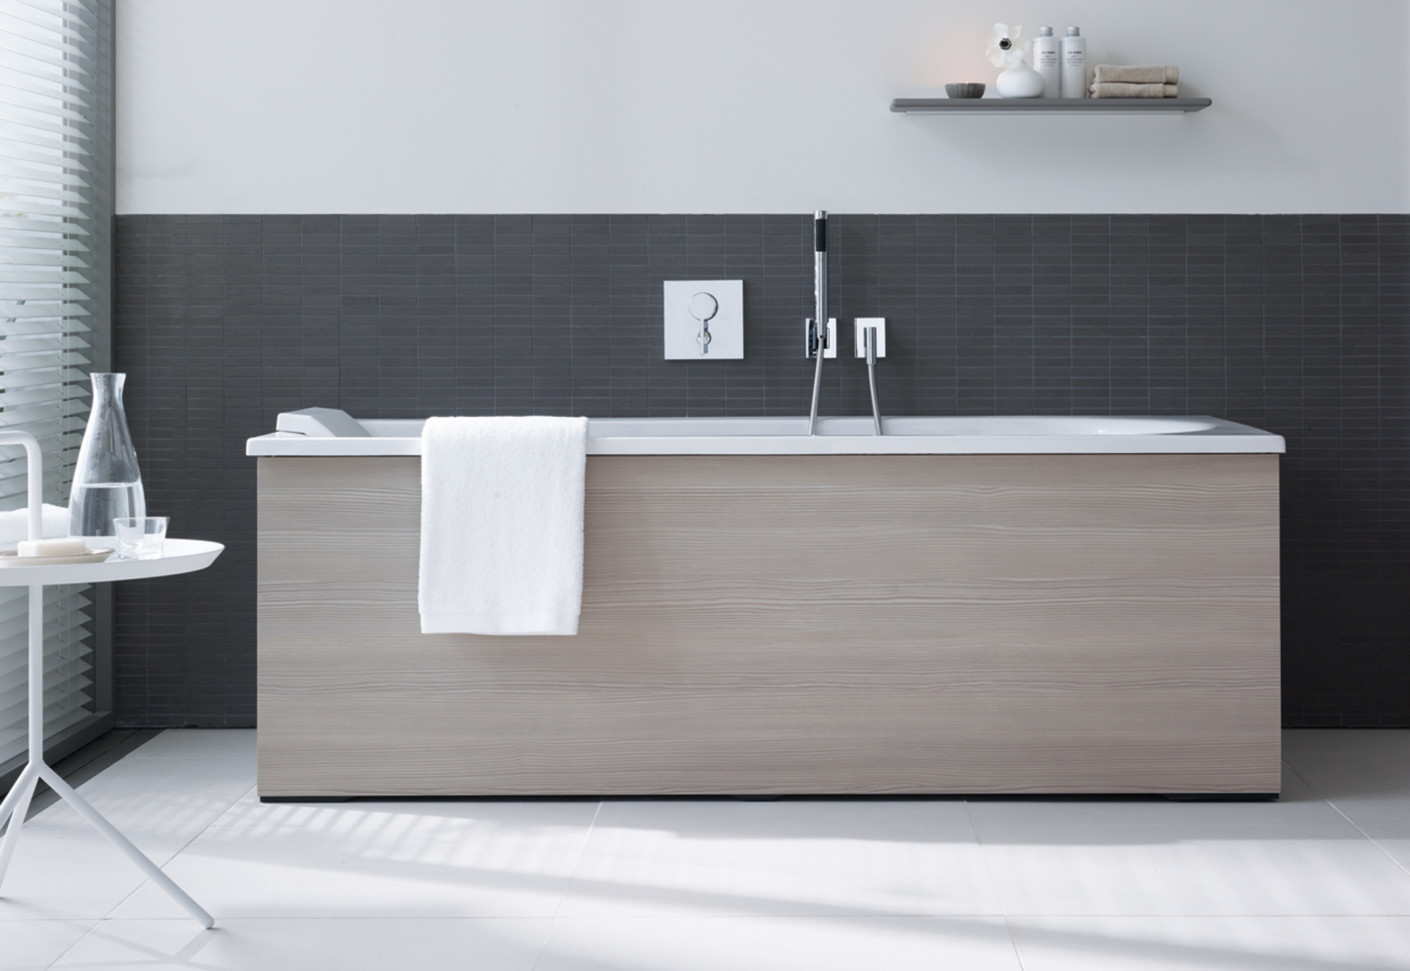 ba duravit outstanding catalogue architec additional fearsome starck engrossing reviews prices bathtubs bathtub warranty marina tub awesome image ideas great appealing soaking interior of bathroom bathrooms